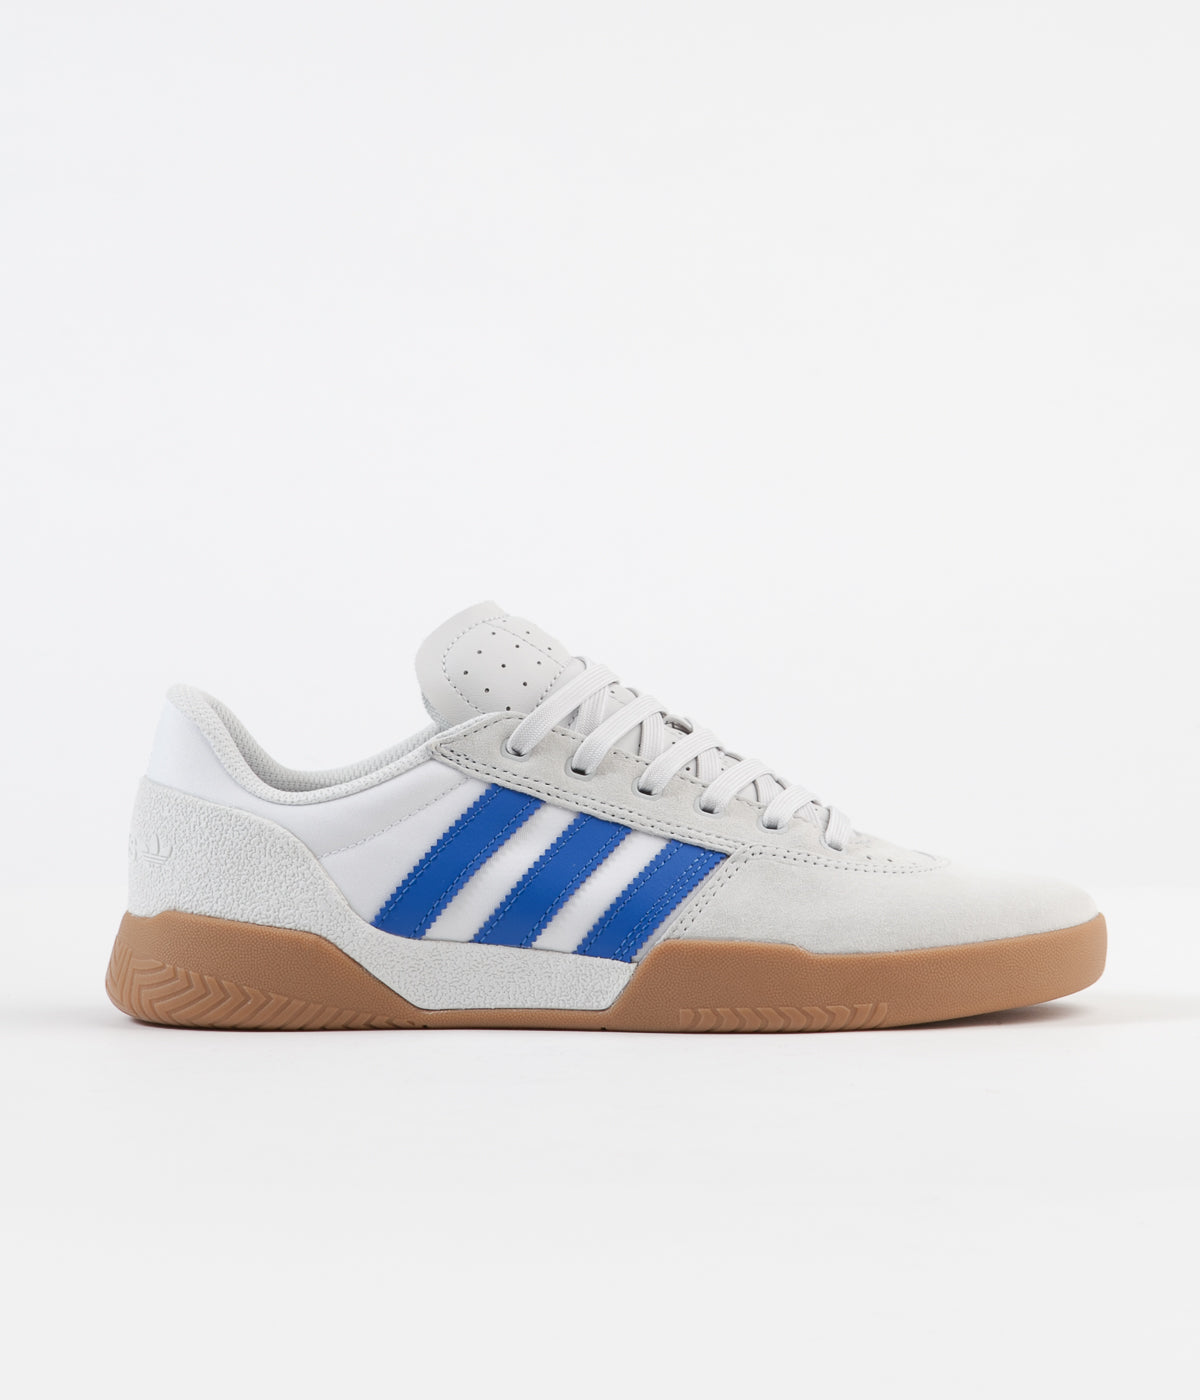 Adidas City Cup Shoes - Crystal White / Blue / Gum4